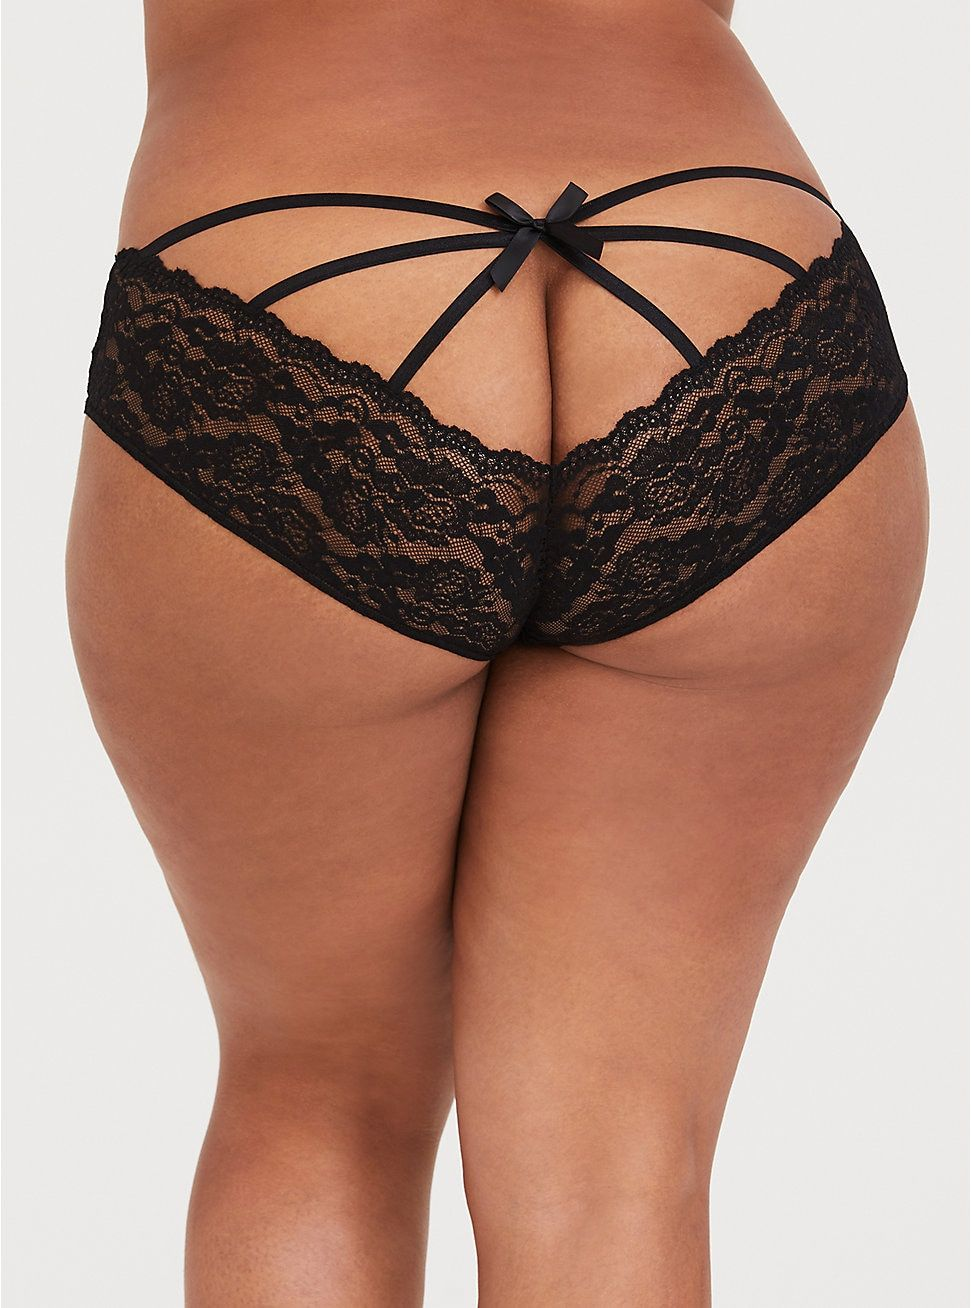 1d814ac75d586 ... dry lowImported plus size underwear. Black Caged Lace Panty